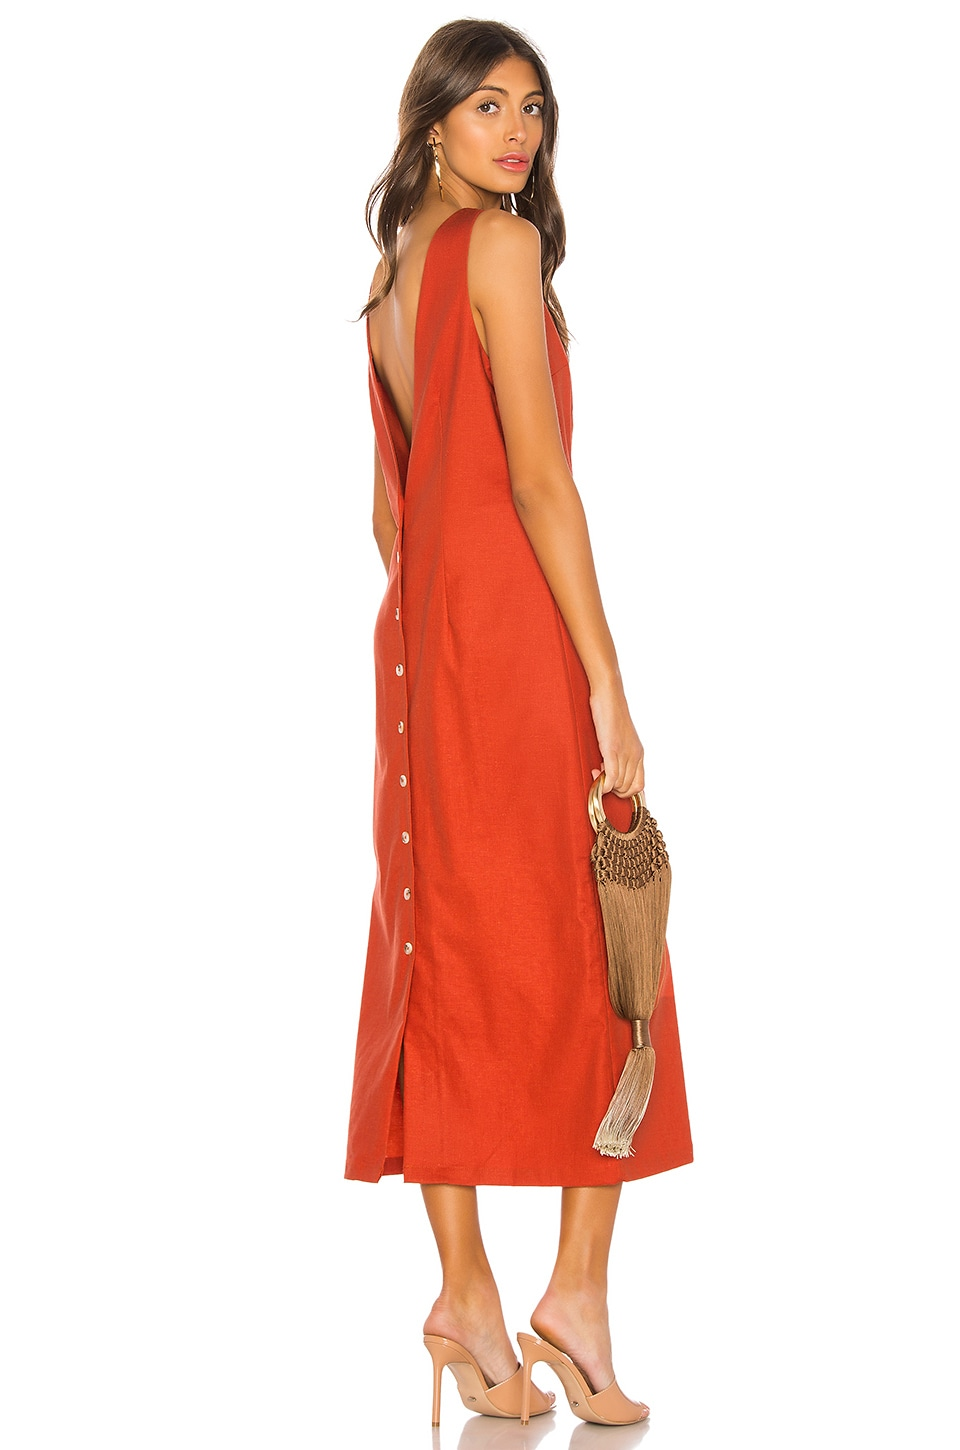 L'Academie The Darcy Midi Dress in Cherry Red